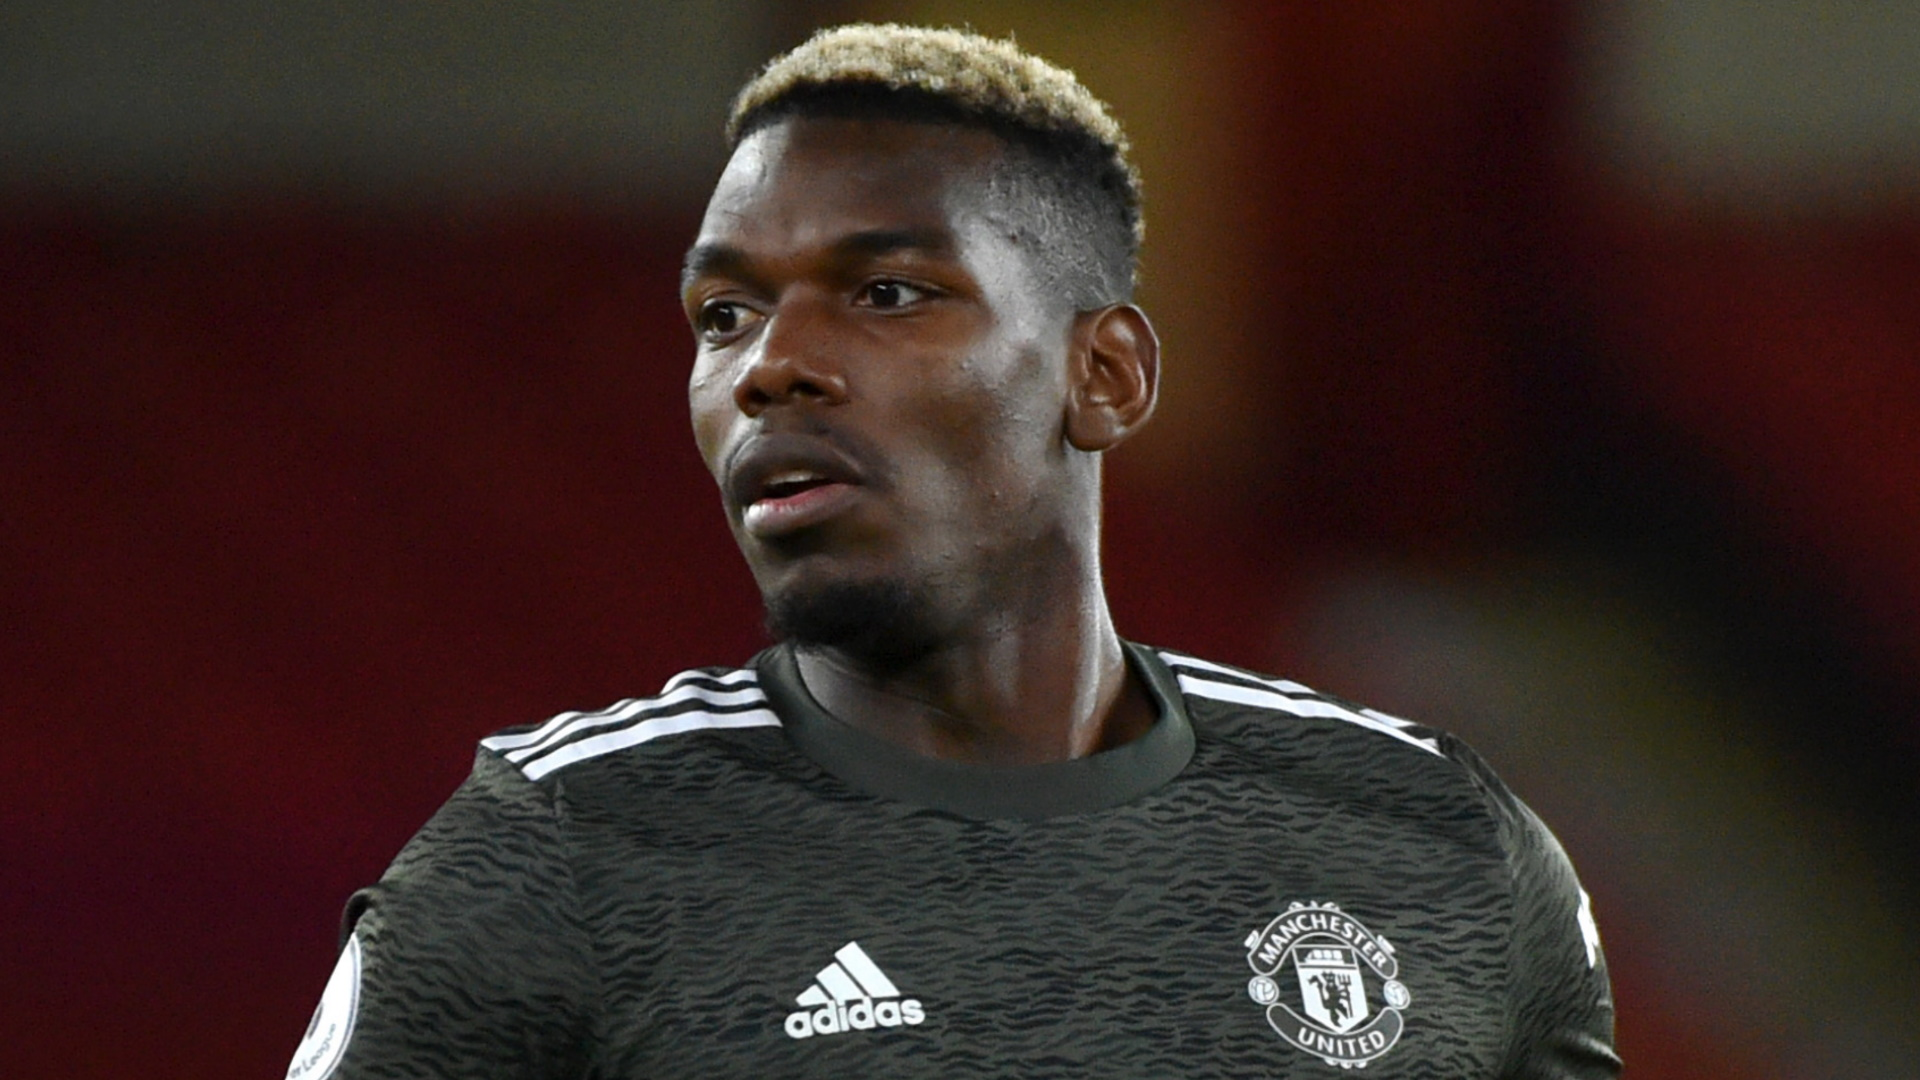 'Anything coming out can be taken with a pinch of salt' - Pogba backed to stay at Old Trafford by ex-Man Utd star Smith